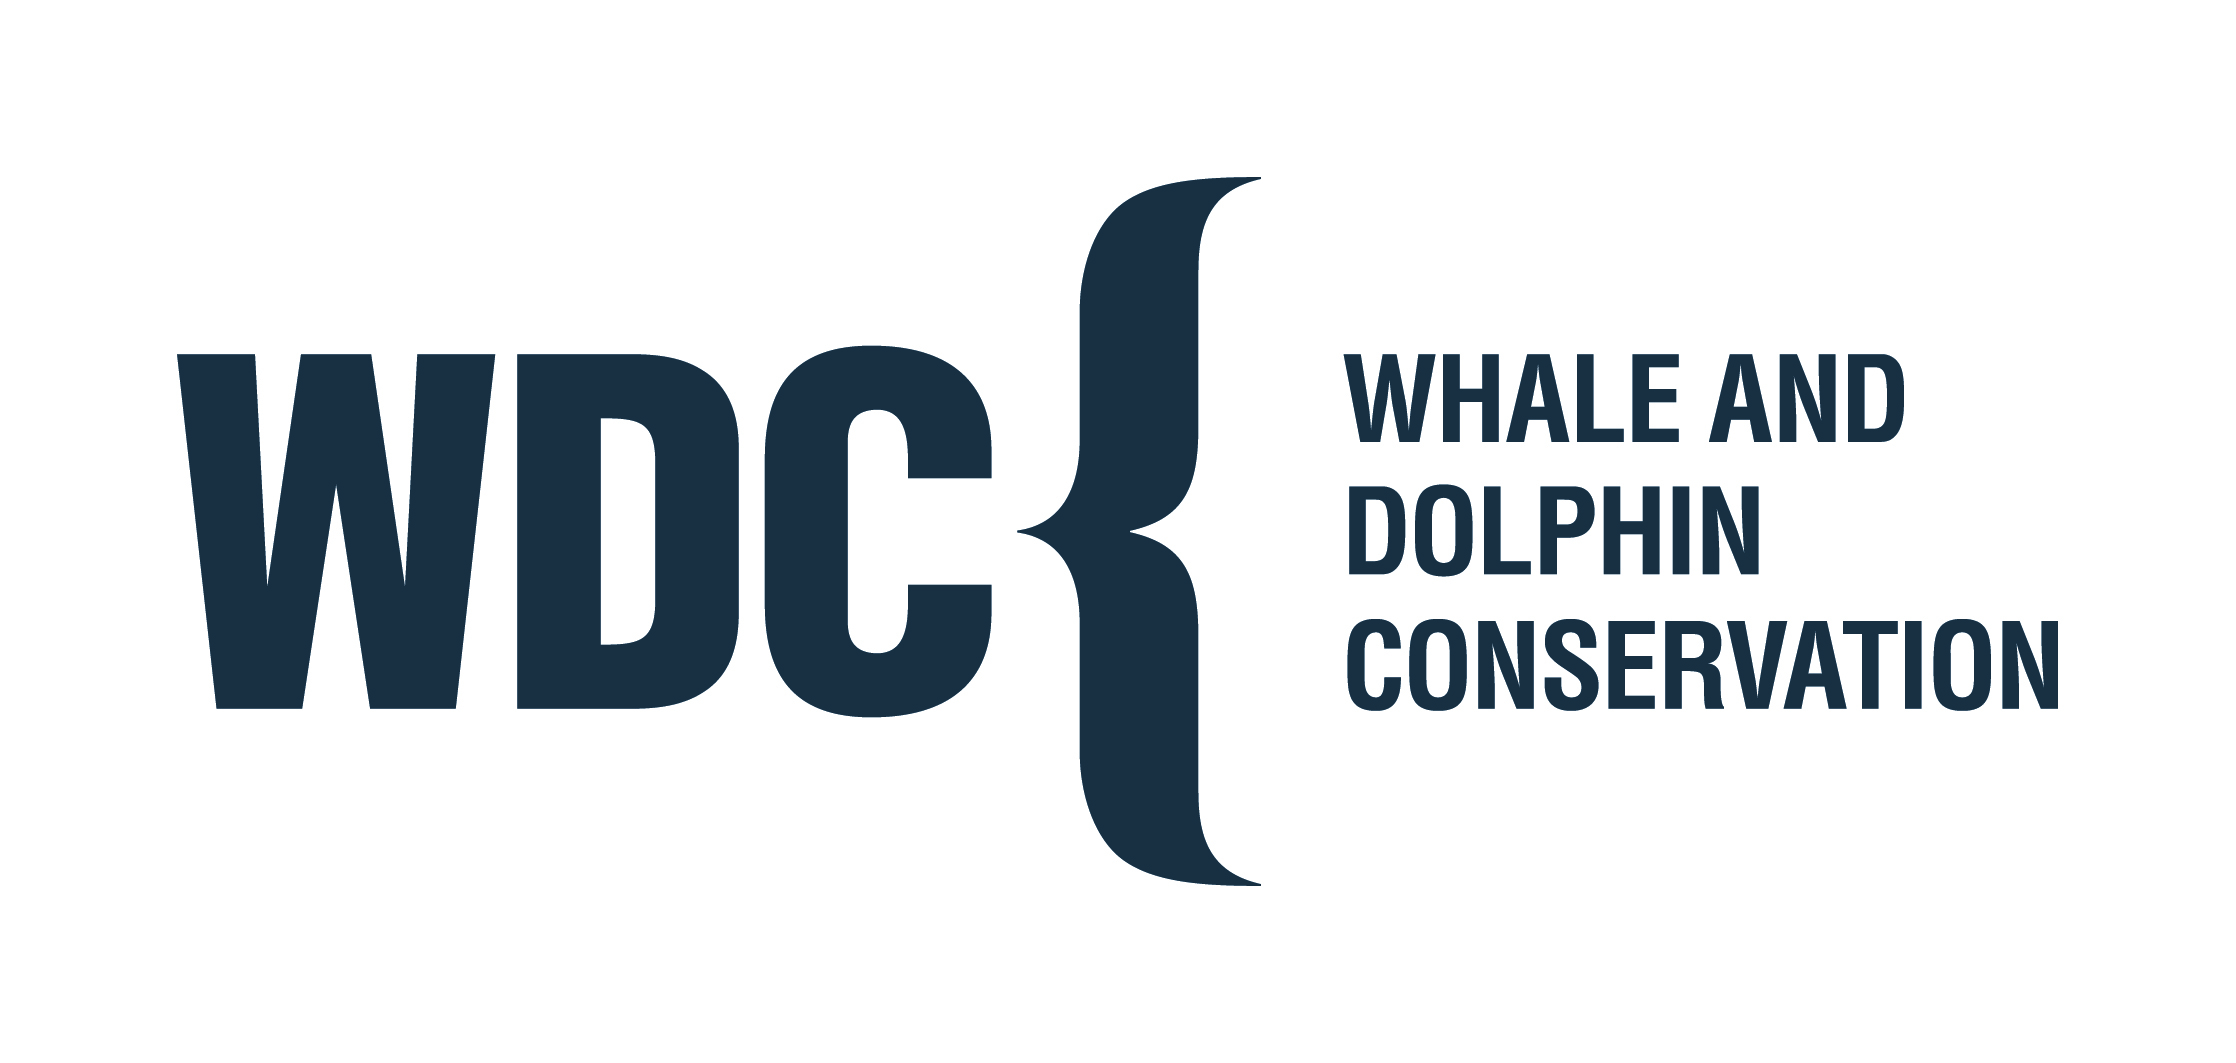 Whale and Dolphin Conservation - Wikipedia